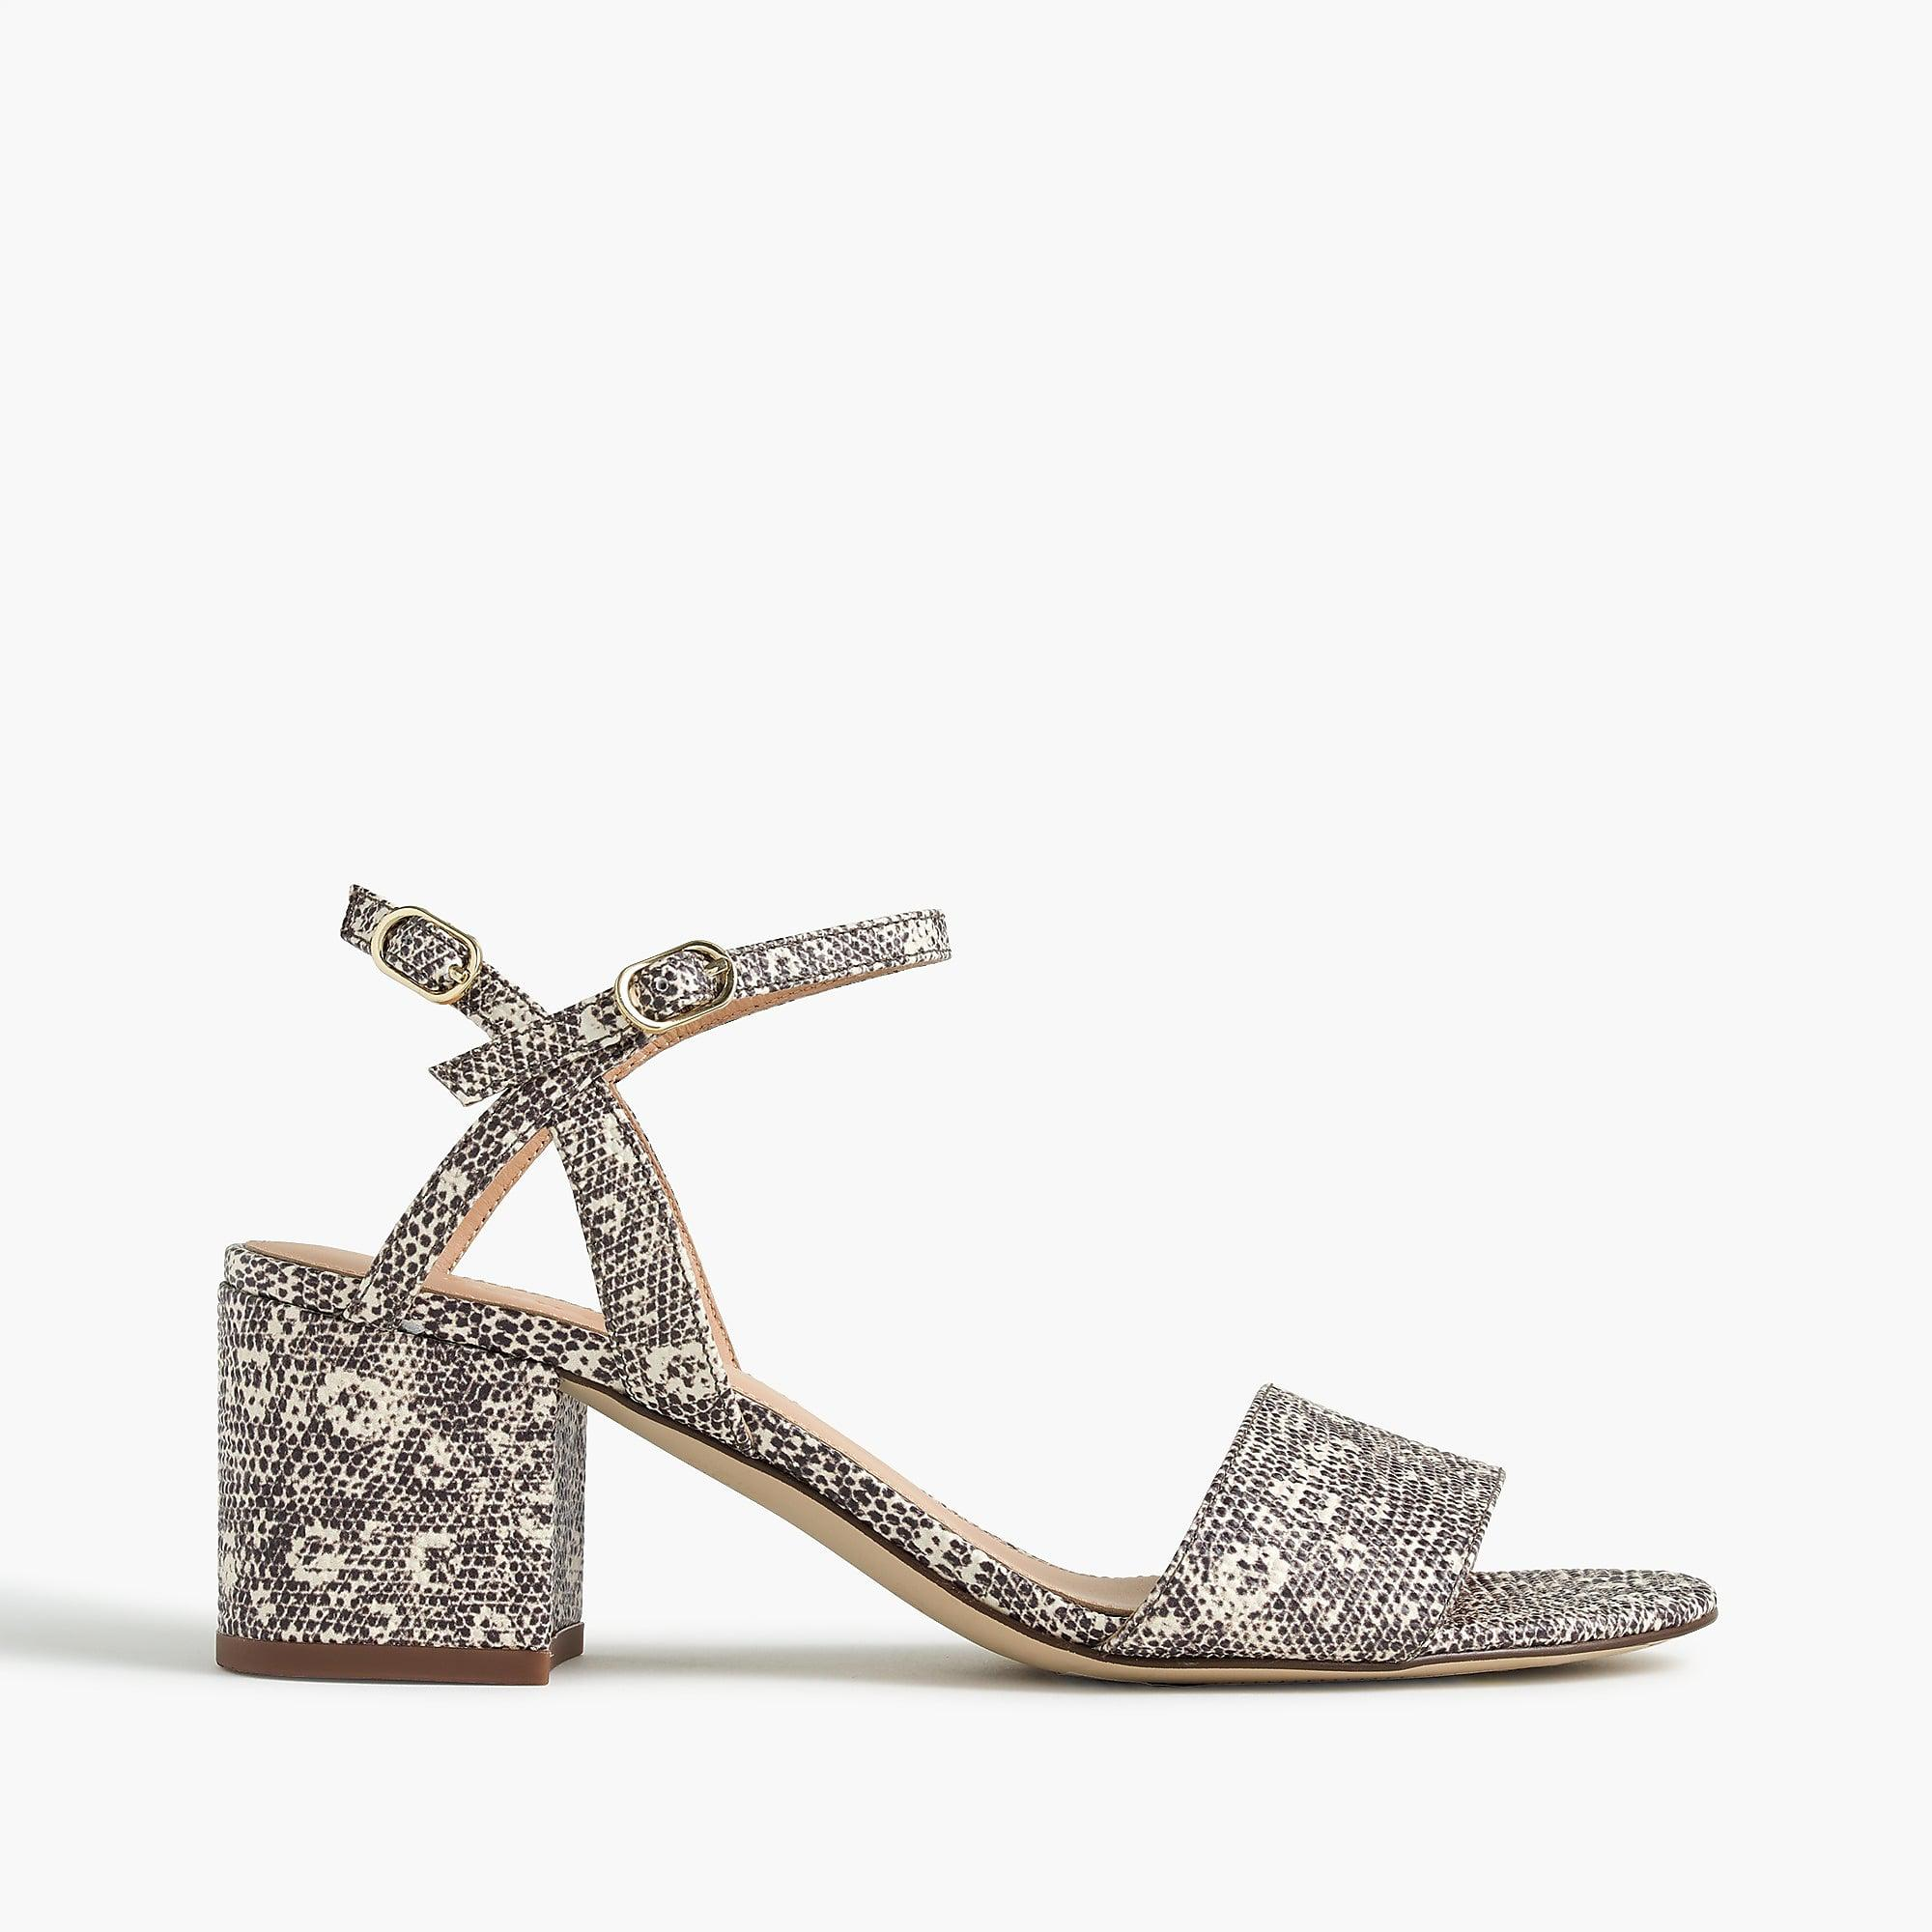 Strappy block-heel sandals (60mm) in lizard-stamped leather Cheapest online Dh4Qzy0O